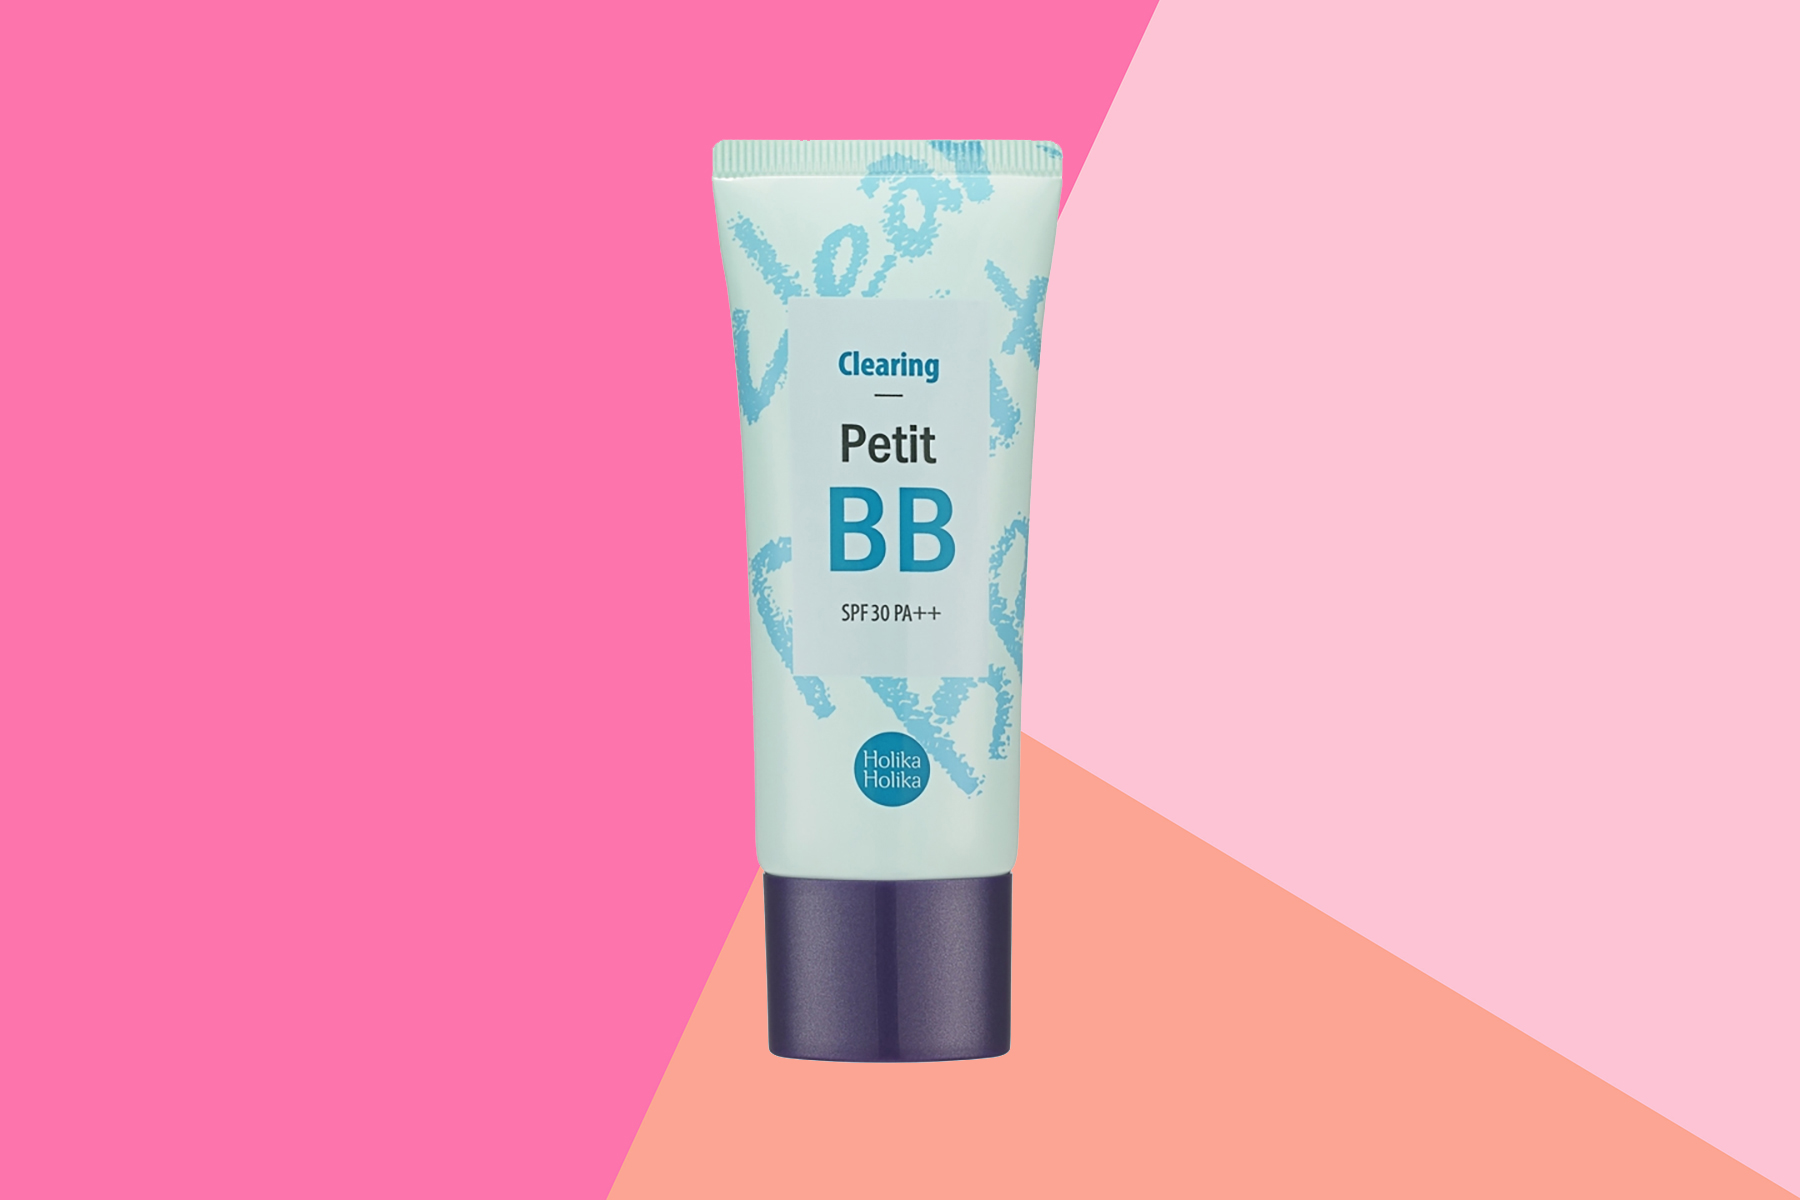 I've Tried 10 BB Creams and This $9 One Is the Best